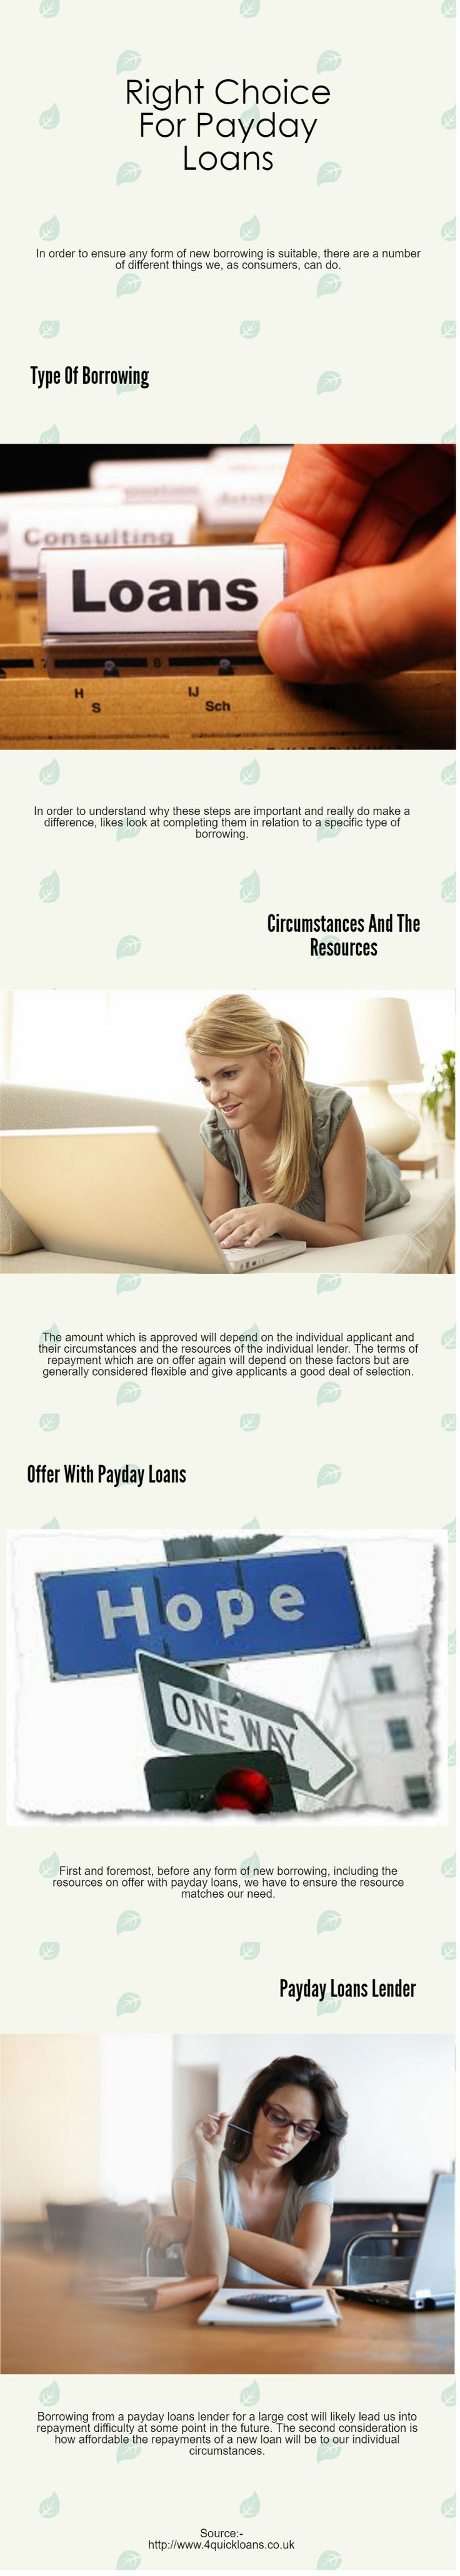 REASONS TO ALWAYS REPAY PAYDAY LOANS I can never ever even begin to stress just how important it is for people to repay loans and other finance when it is obtained. http://quickloans78.weebly.com/news/-reasons-to-always-repay-payday-loans #instant_payday_loans #quick_loans_online #easy_money_loans #no_credit_check_installment_loans #installment_loan #installment_loans #payday_loans_online #instant_payday_loans #short_term_loans_for_bad_credit #online_loans_no_credit_check_instant_approval